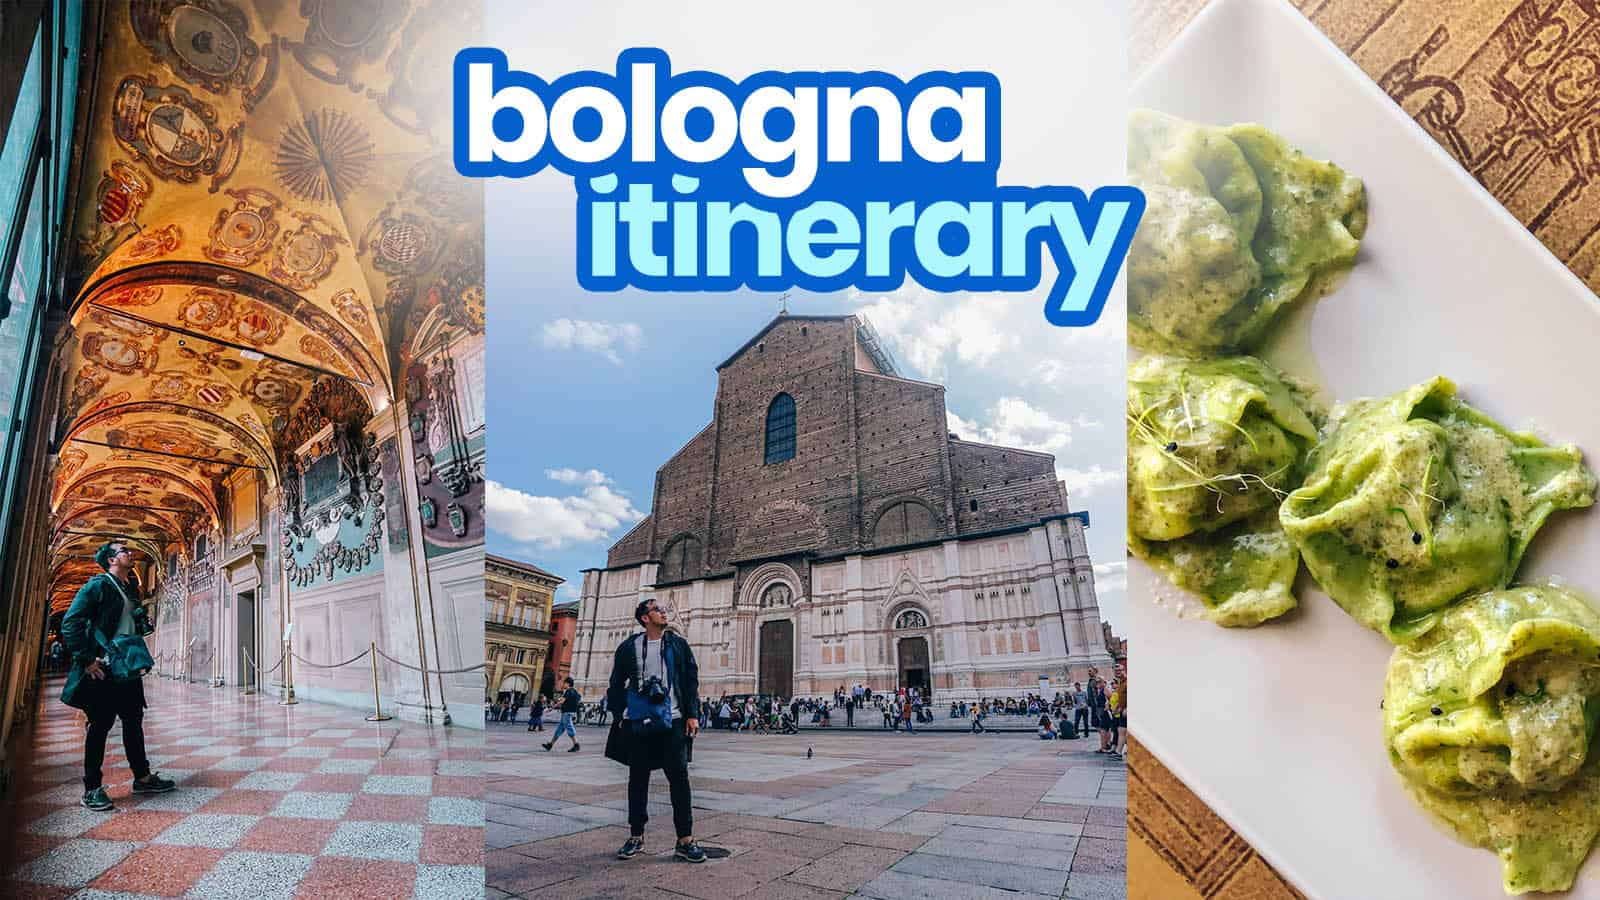 BOLOGNA ITINERARY: 20 Best Things to Do & Places to Visit